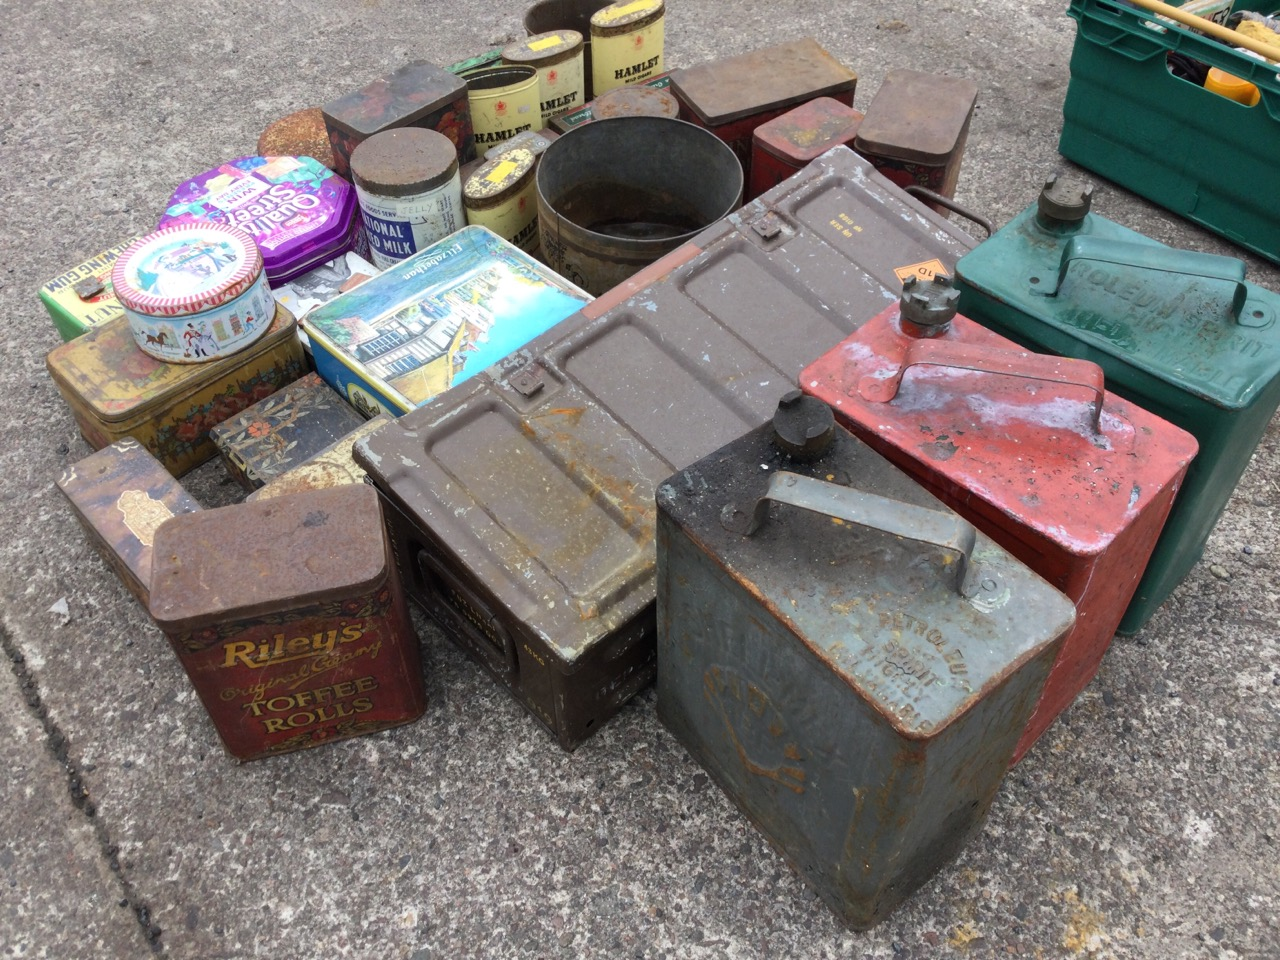 Miscellaneous tins including three shell oil cans, biscuit tins, an ammunition box, toffee tins, - Image 2 of 3